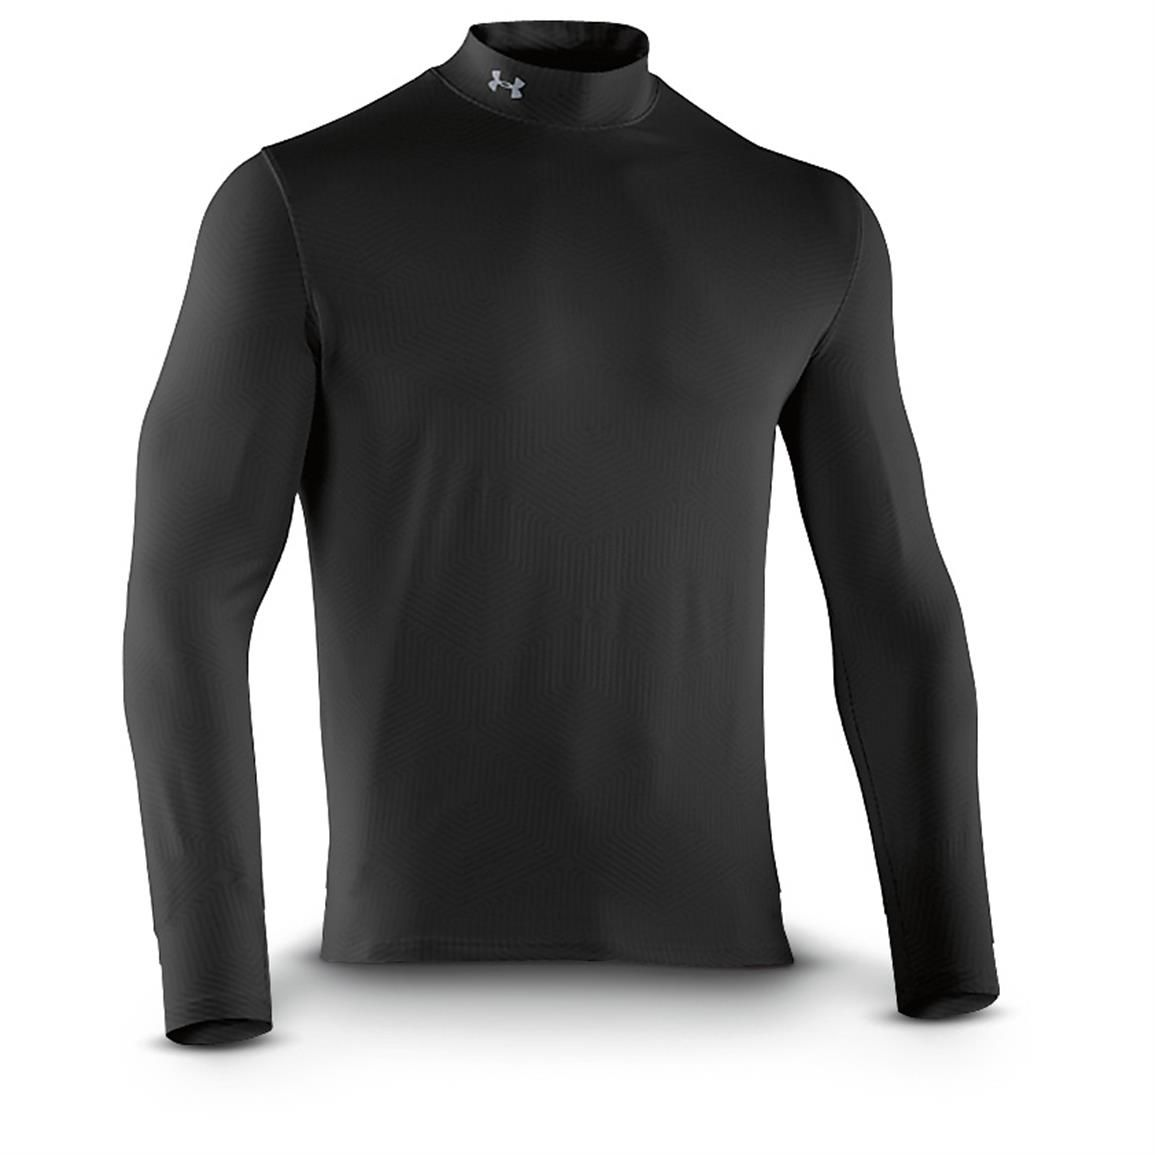 under armour mock turtleneck